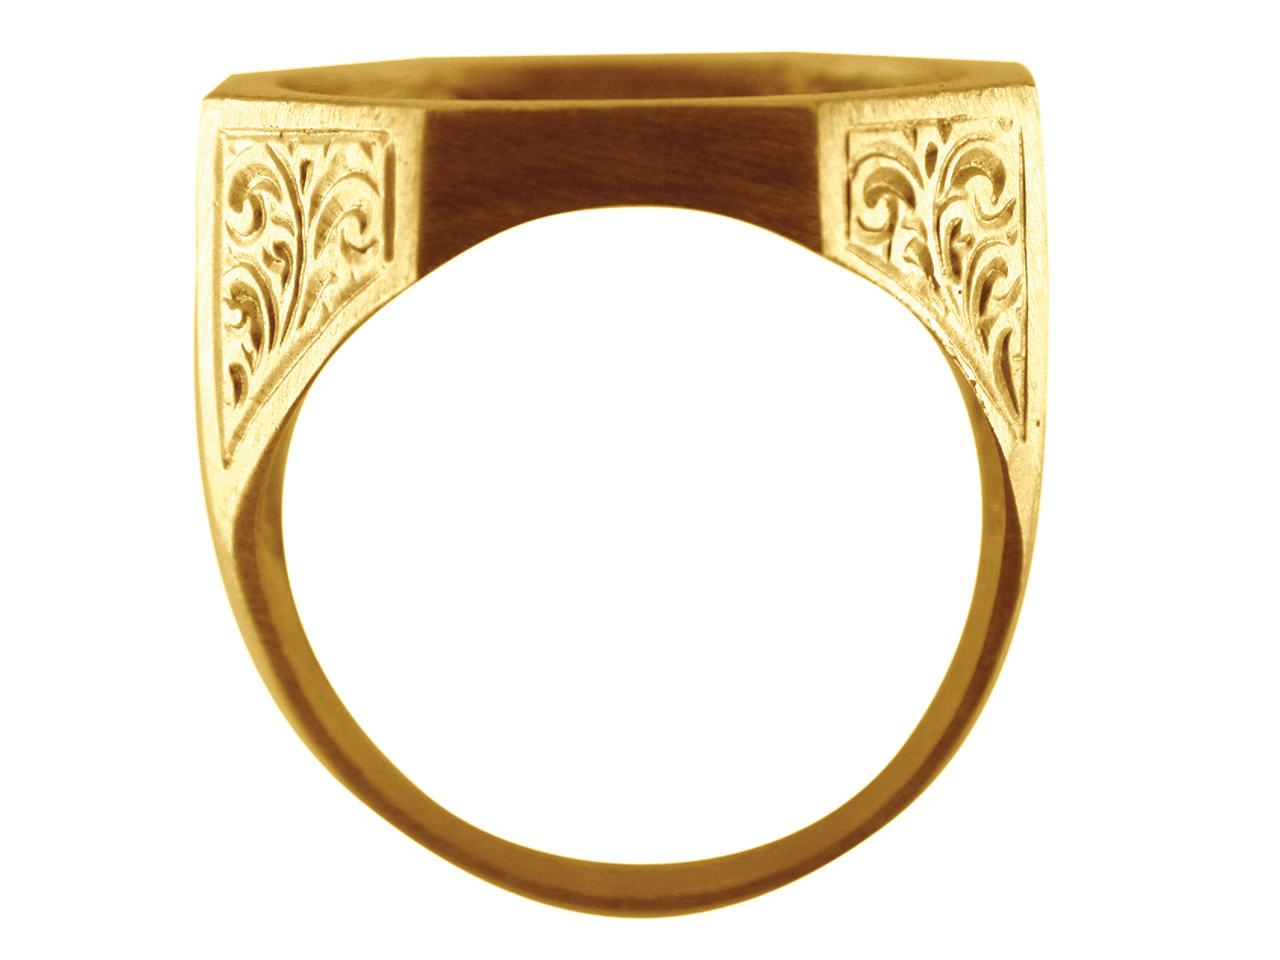 ring rings usd sovereign sovering gold somar products